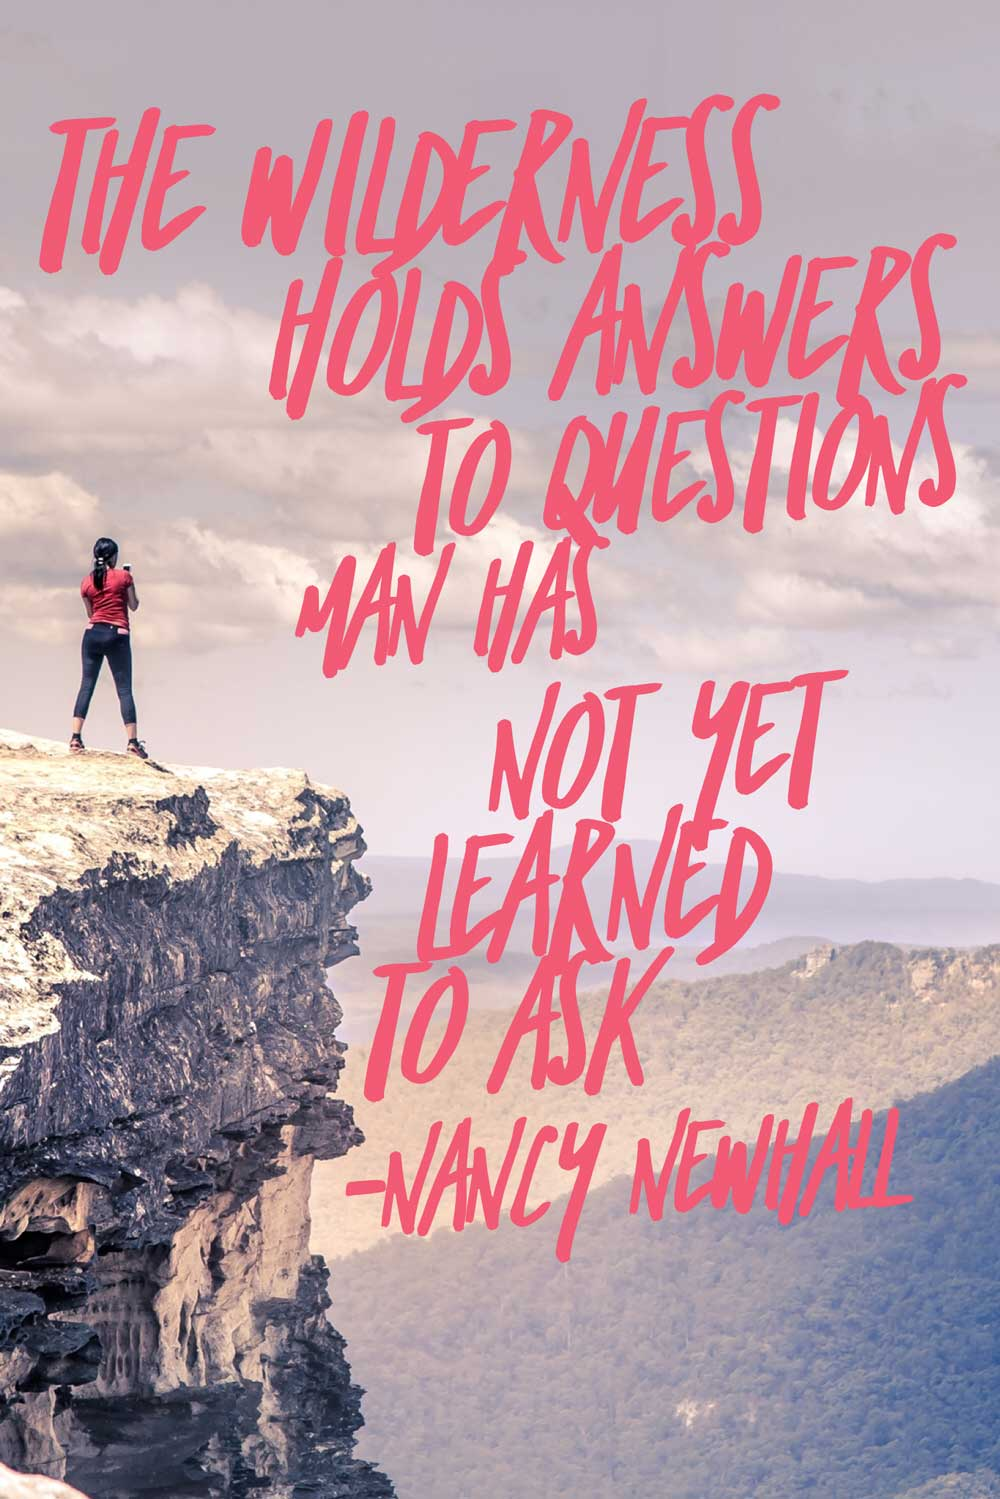 """The wilderness holds answers to questions man has not yet learned to ask.""  - Nancy Newhall"